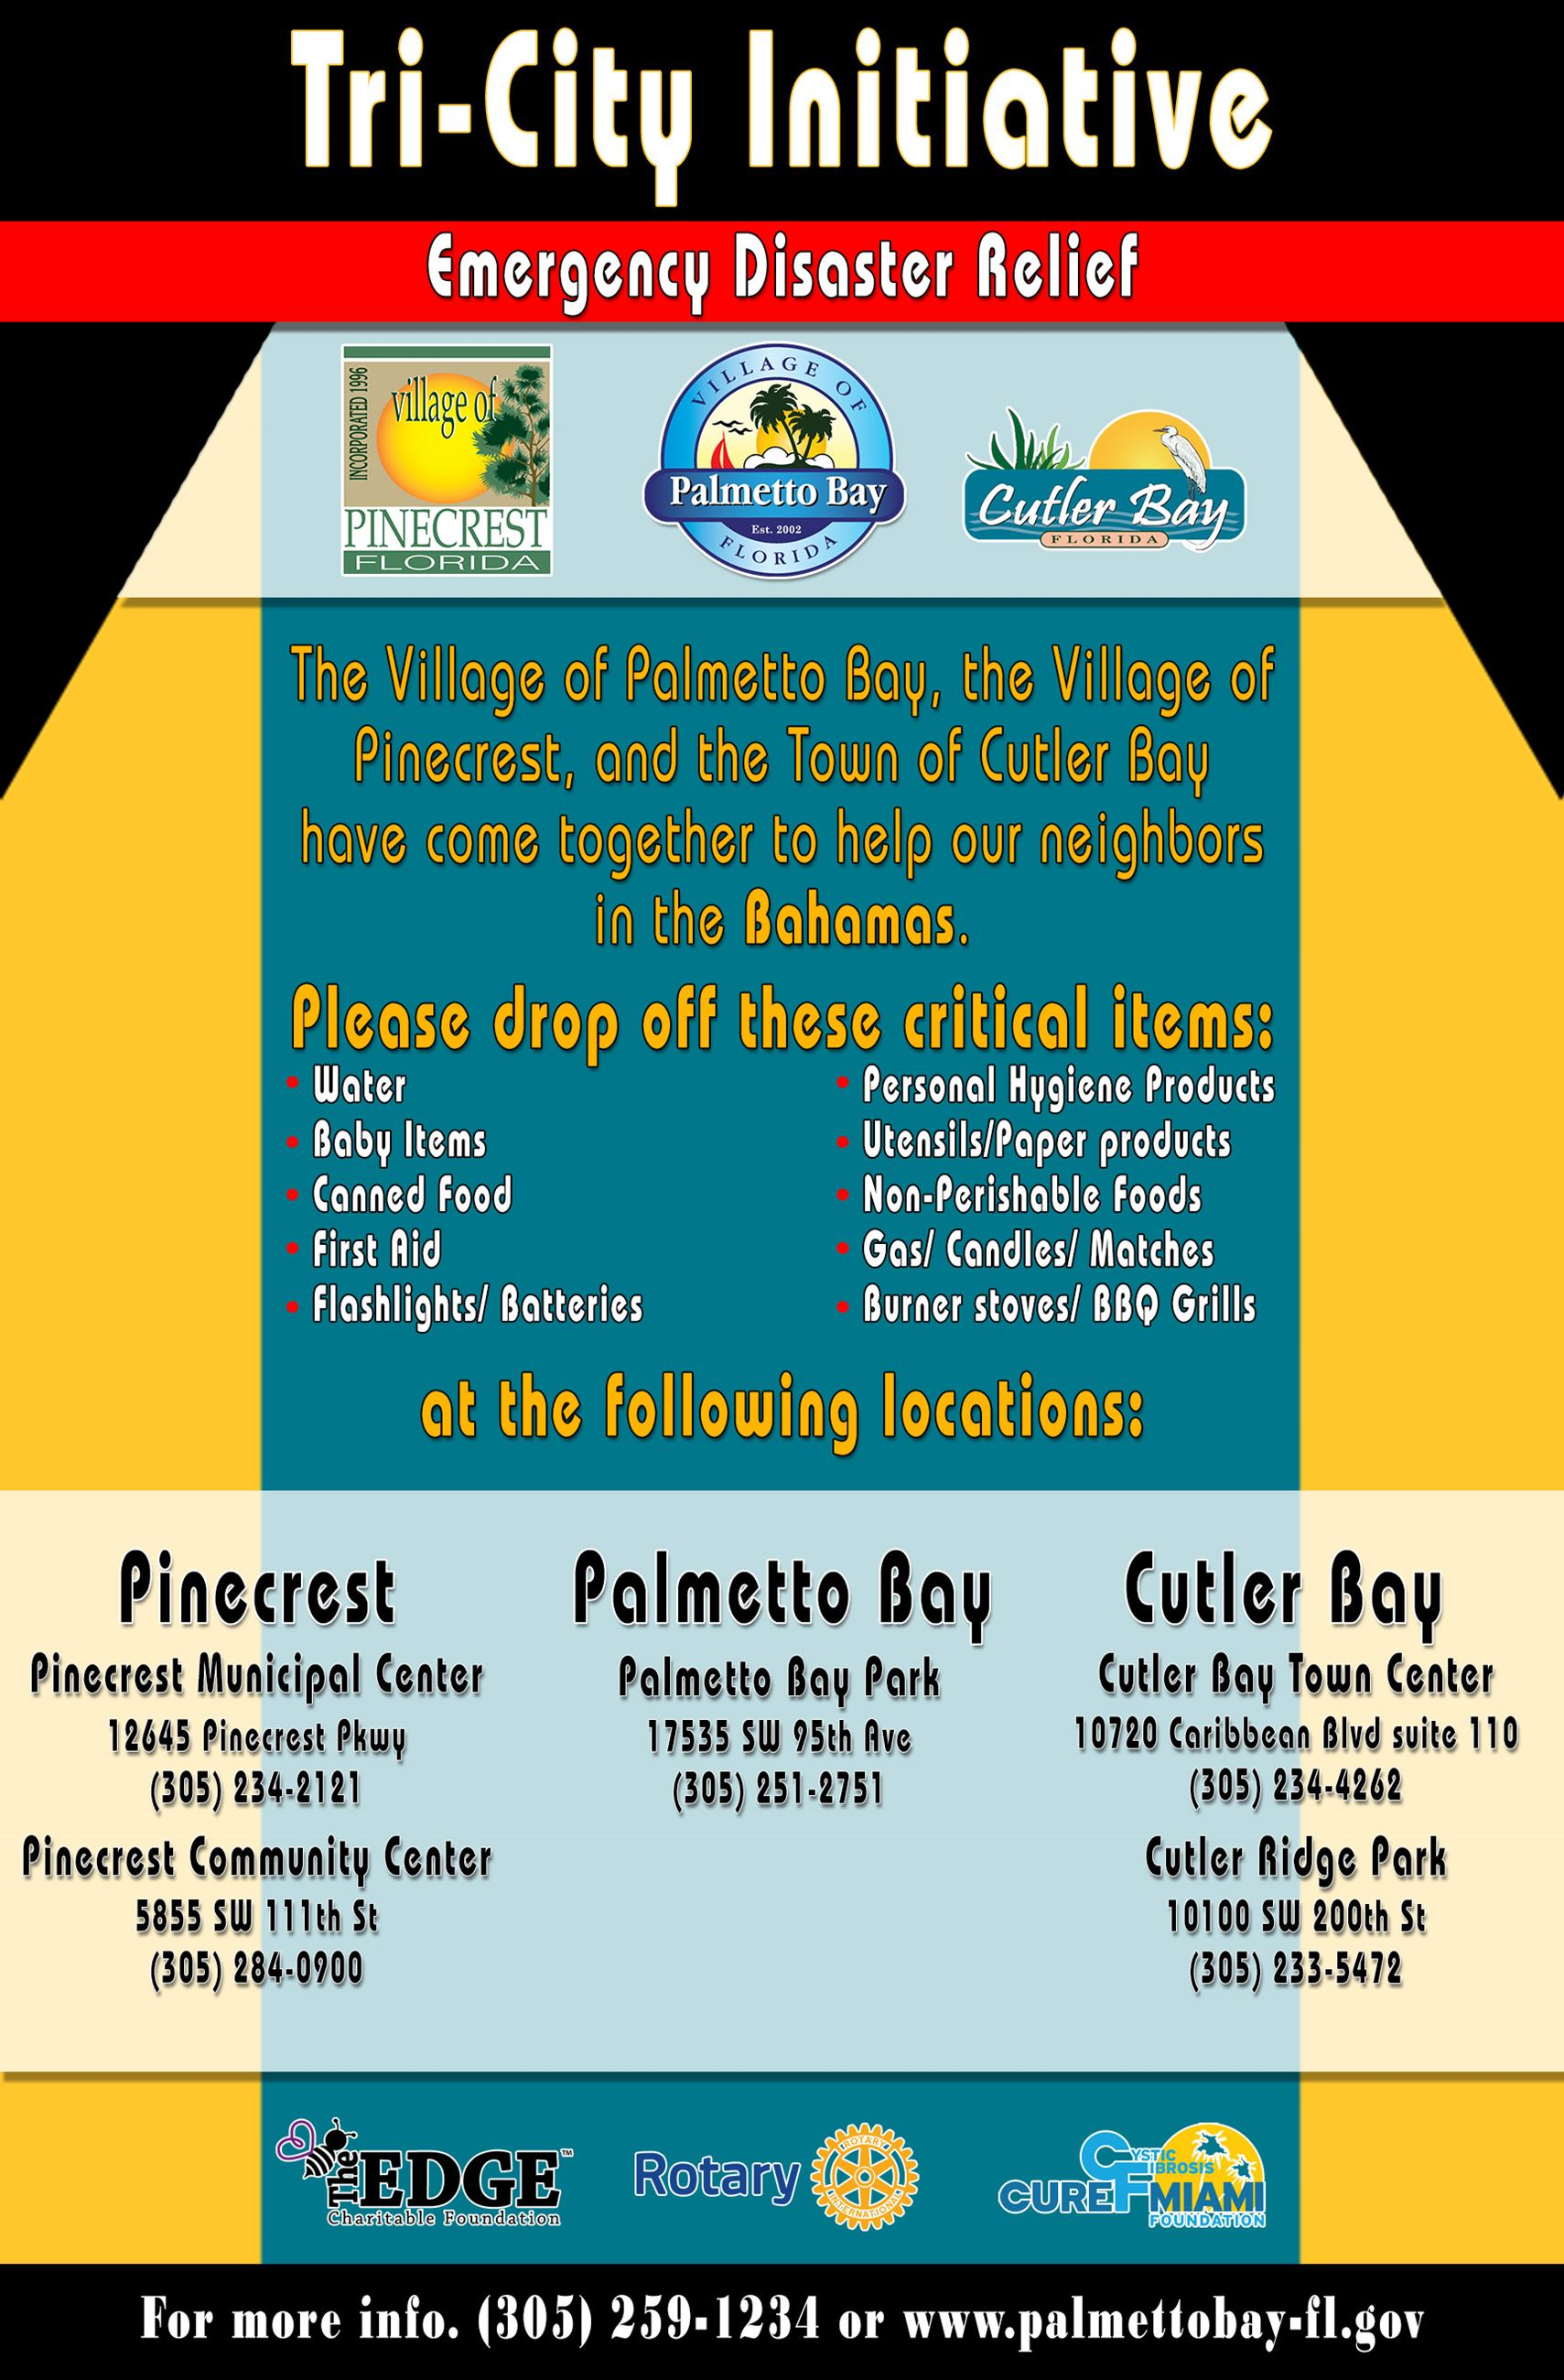 Hurricane Dorian Tricity Initiative, Palmetto Bay, Pinecrest and Cutler Bay are joining efforts for